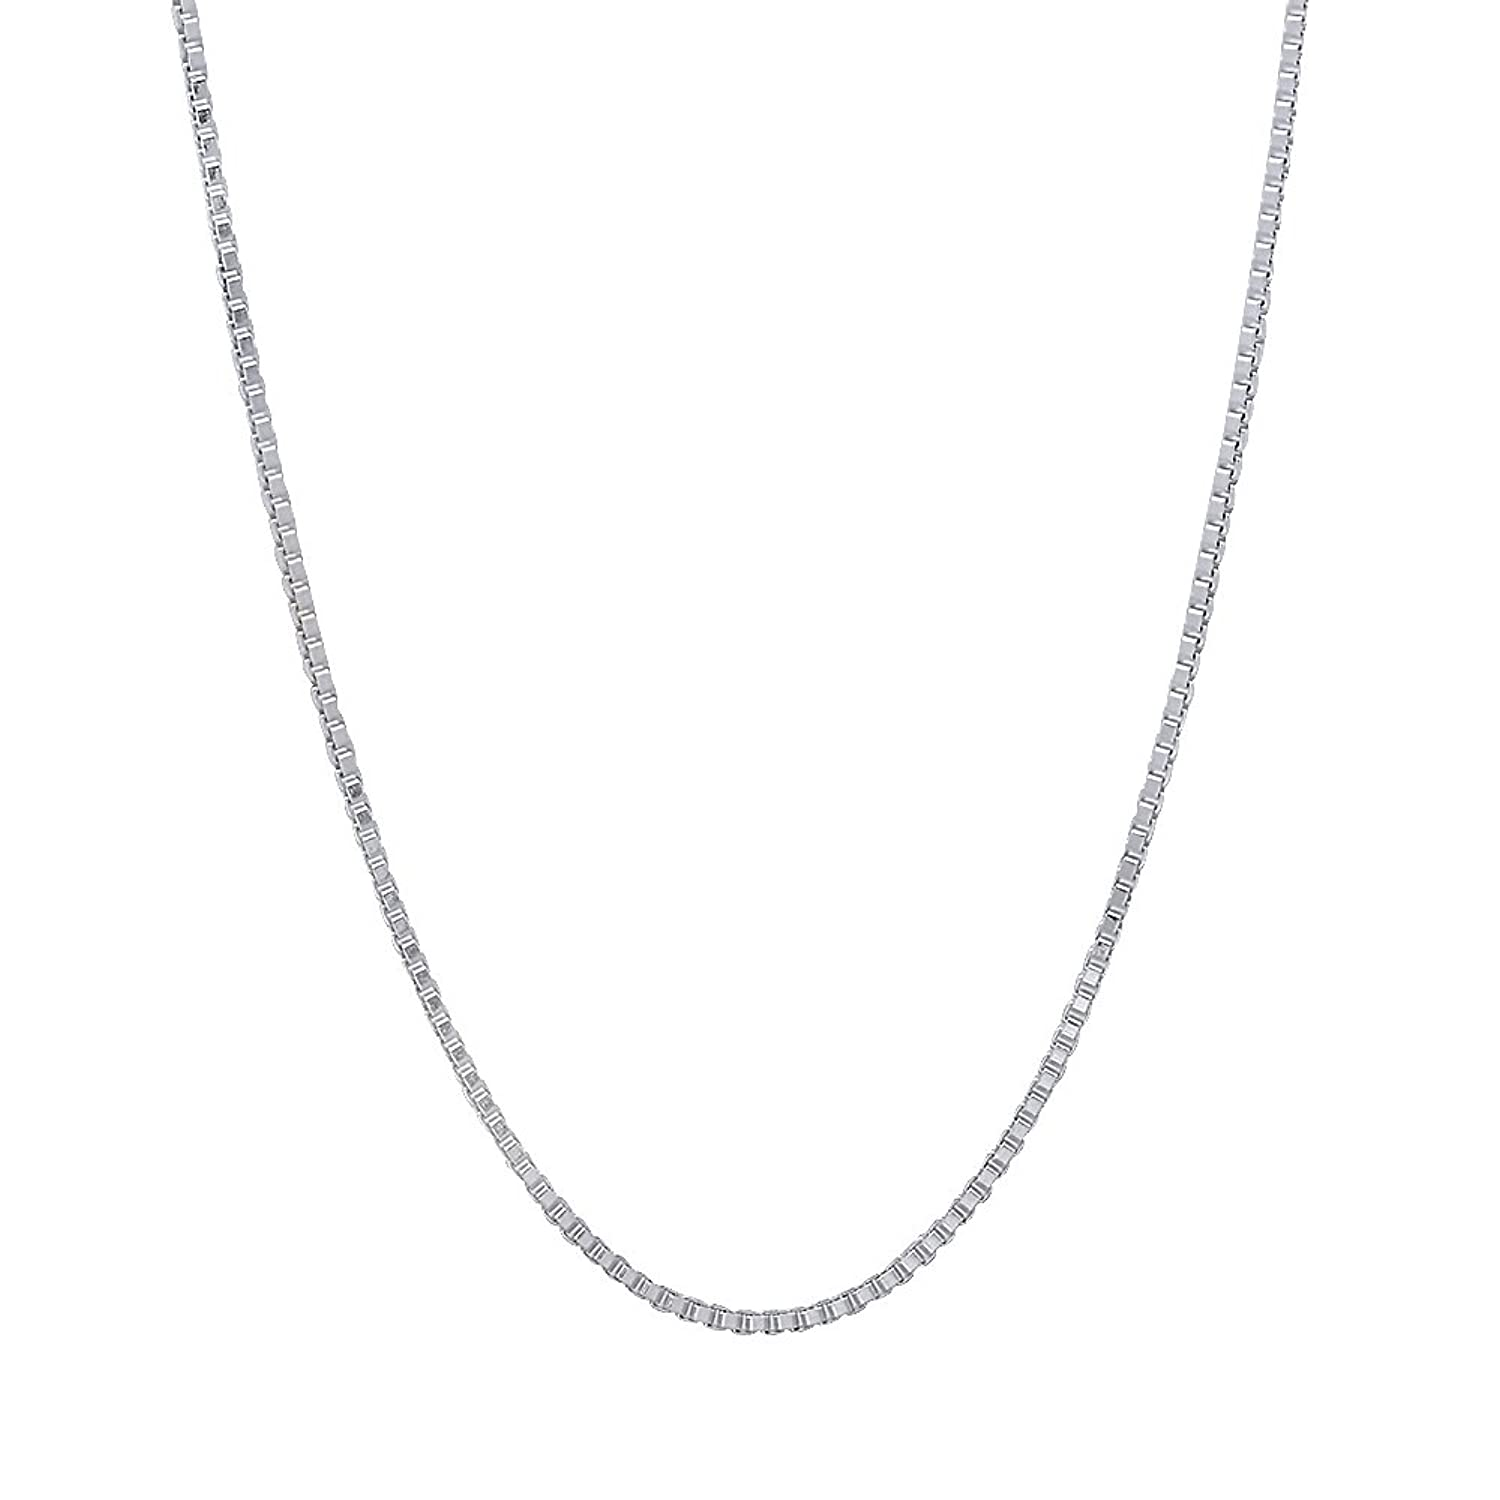 1mm 925 Sterling Silver Nickel-Free Box Chain Necklace - Made in Italy + Jewelry Polishing Cloth